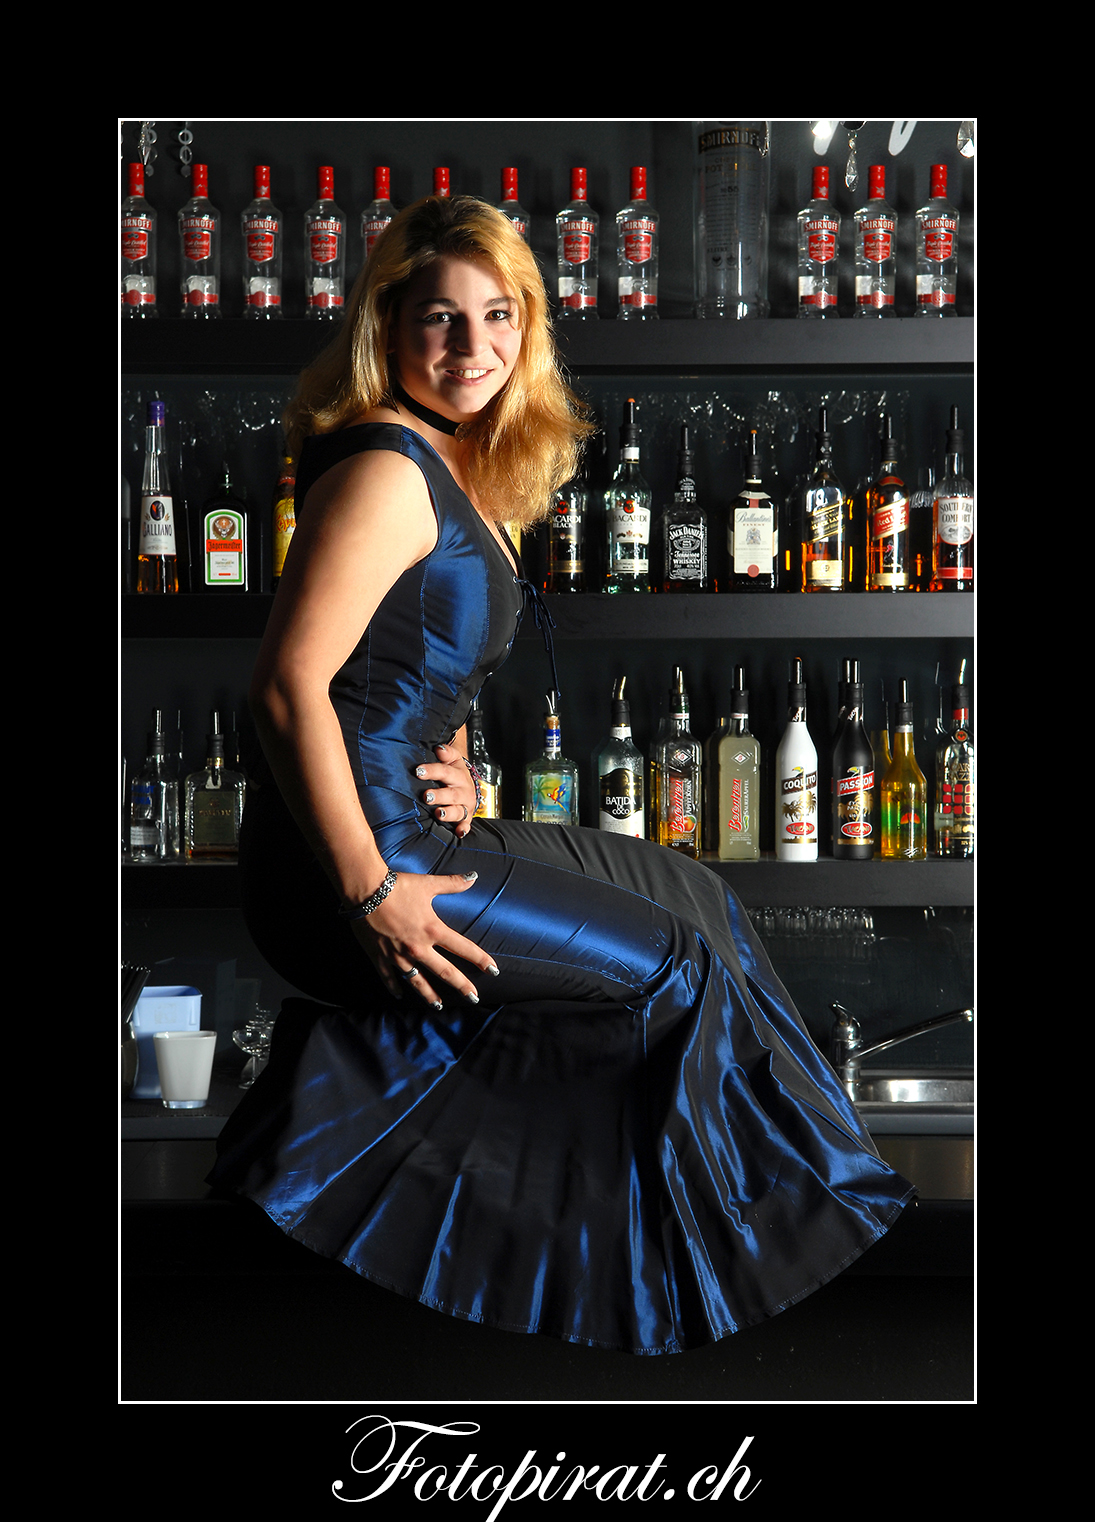 Fotoshooting, On Location, Bar, Modelagentur, Fotomodel, Ballkleid